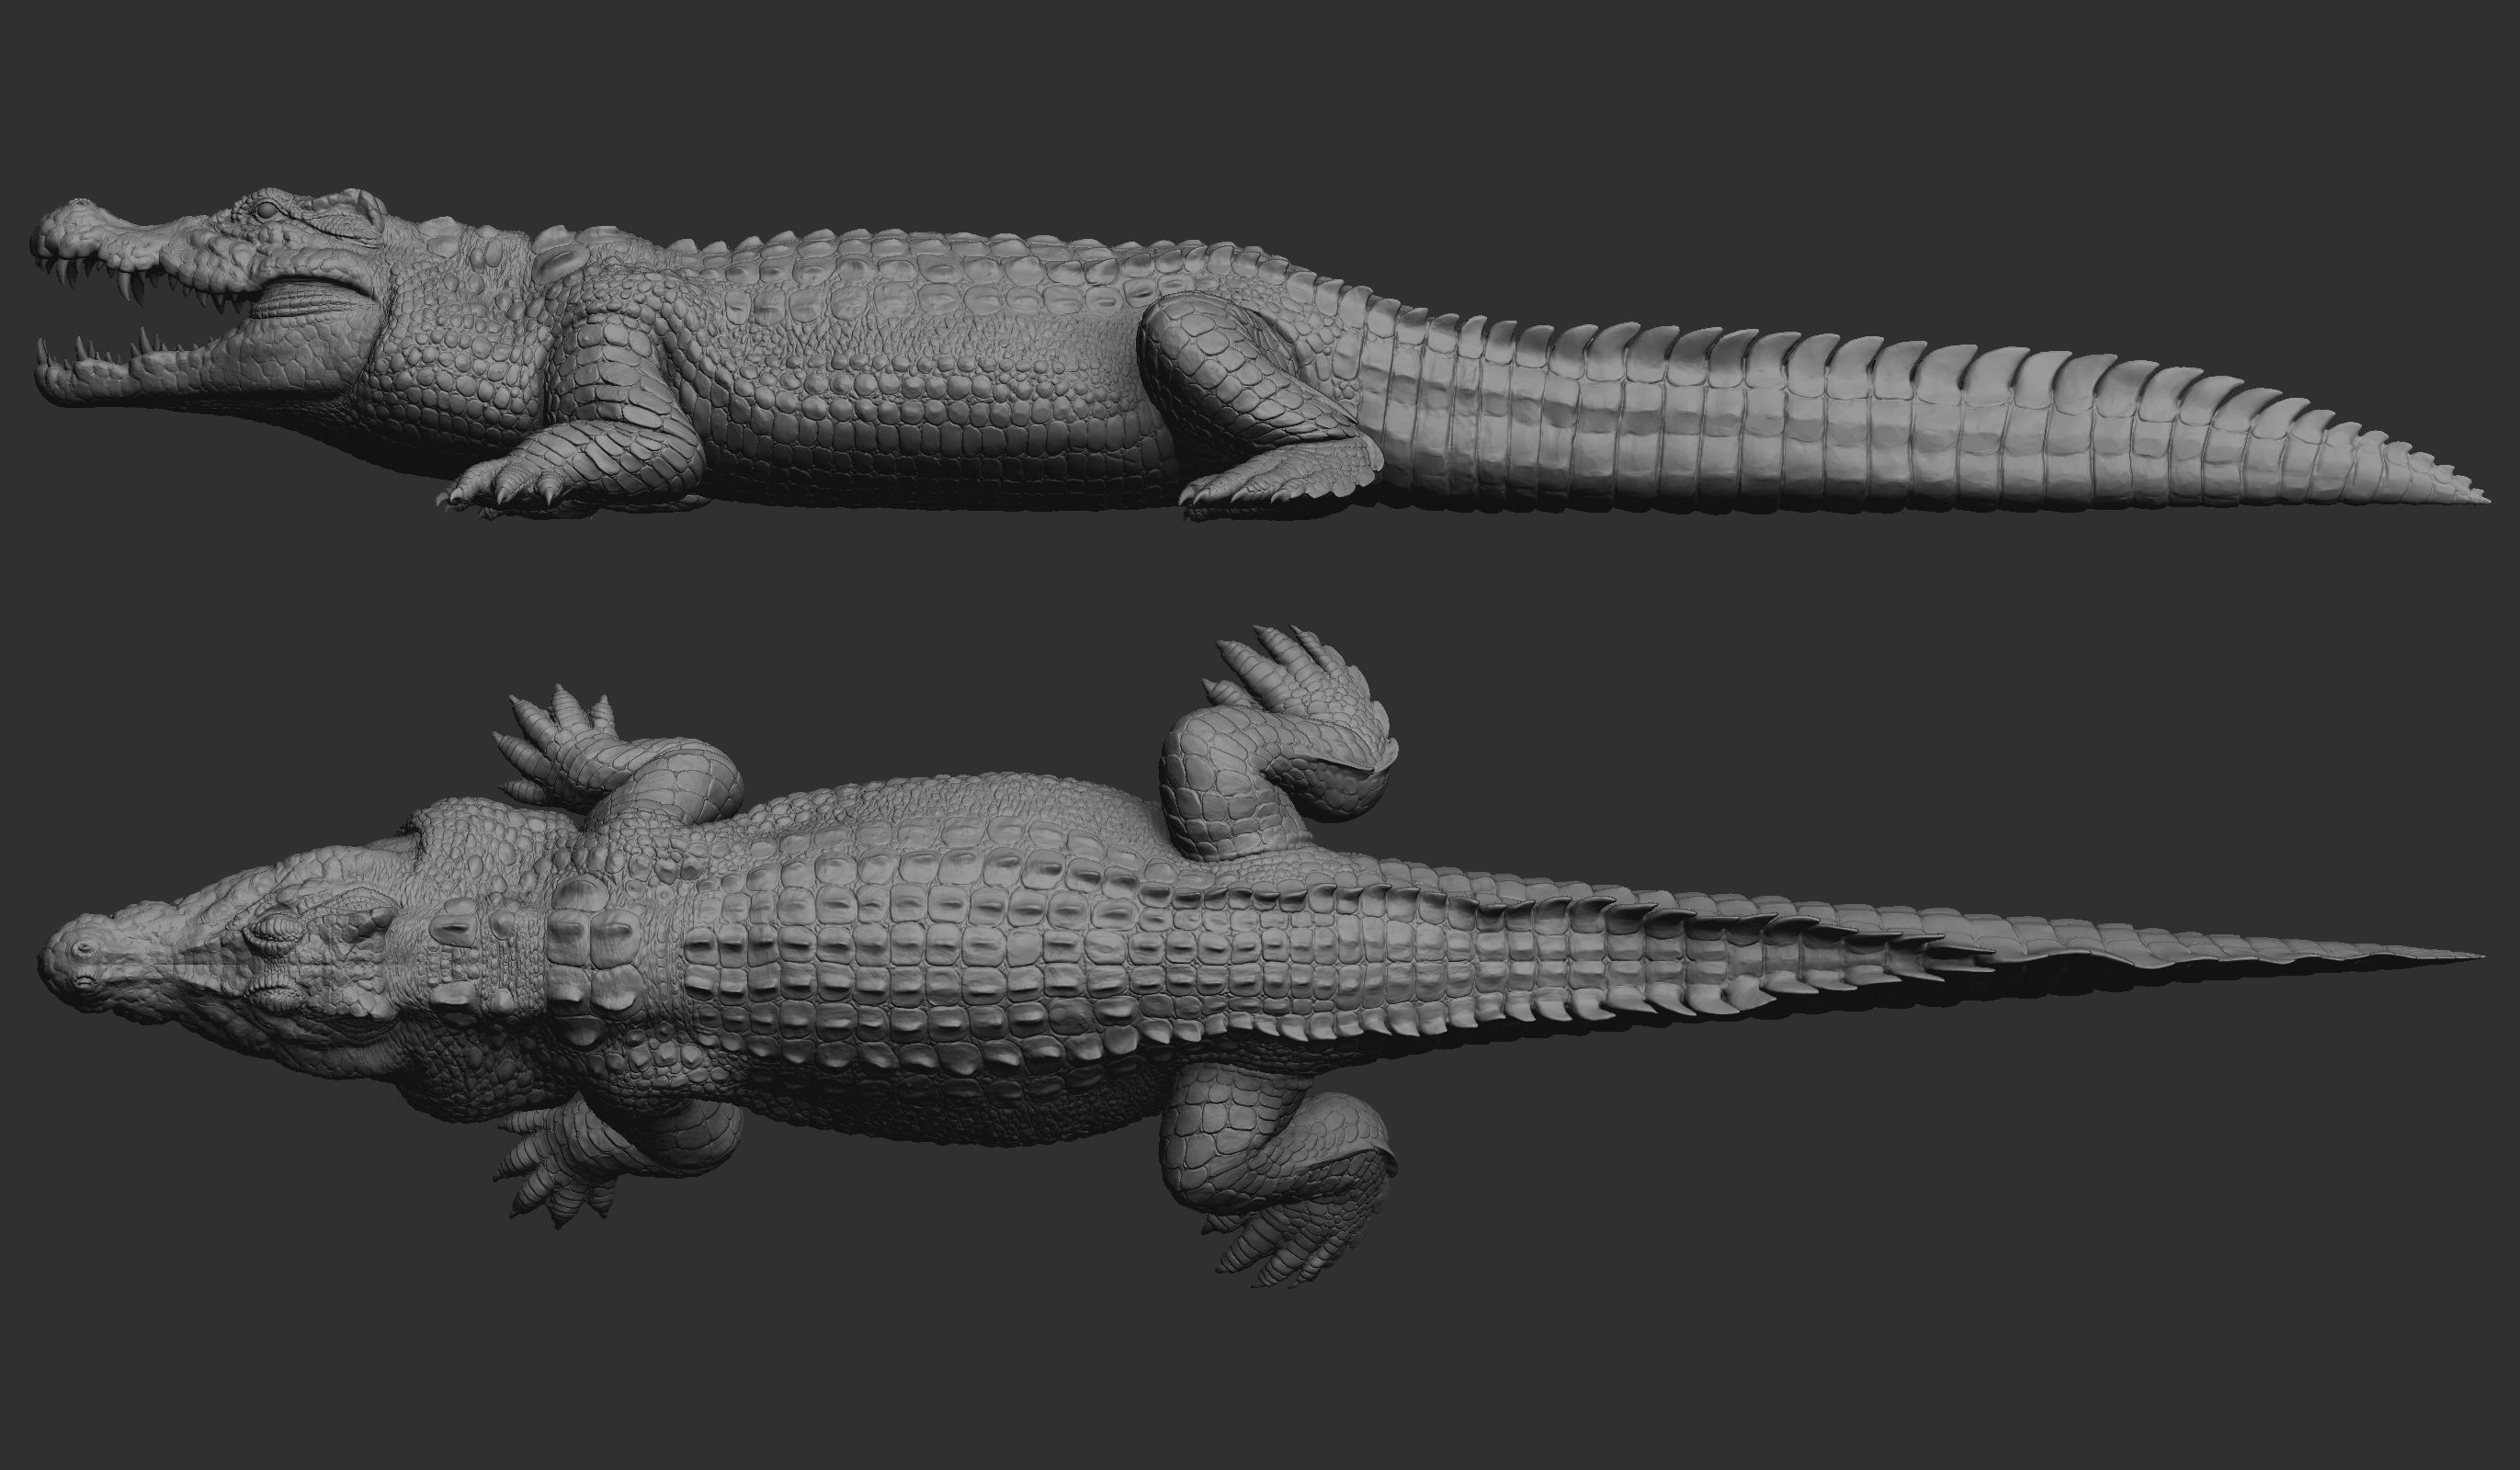 Hight detailed crocodile model 3D model in 2020